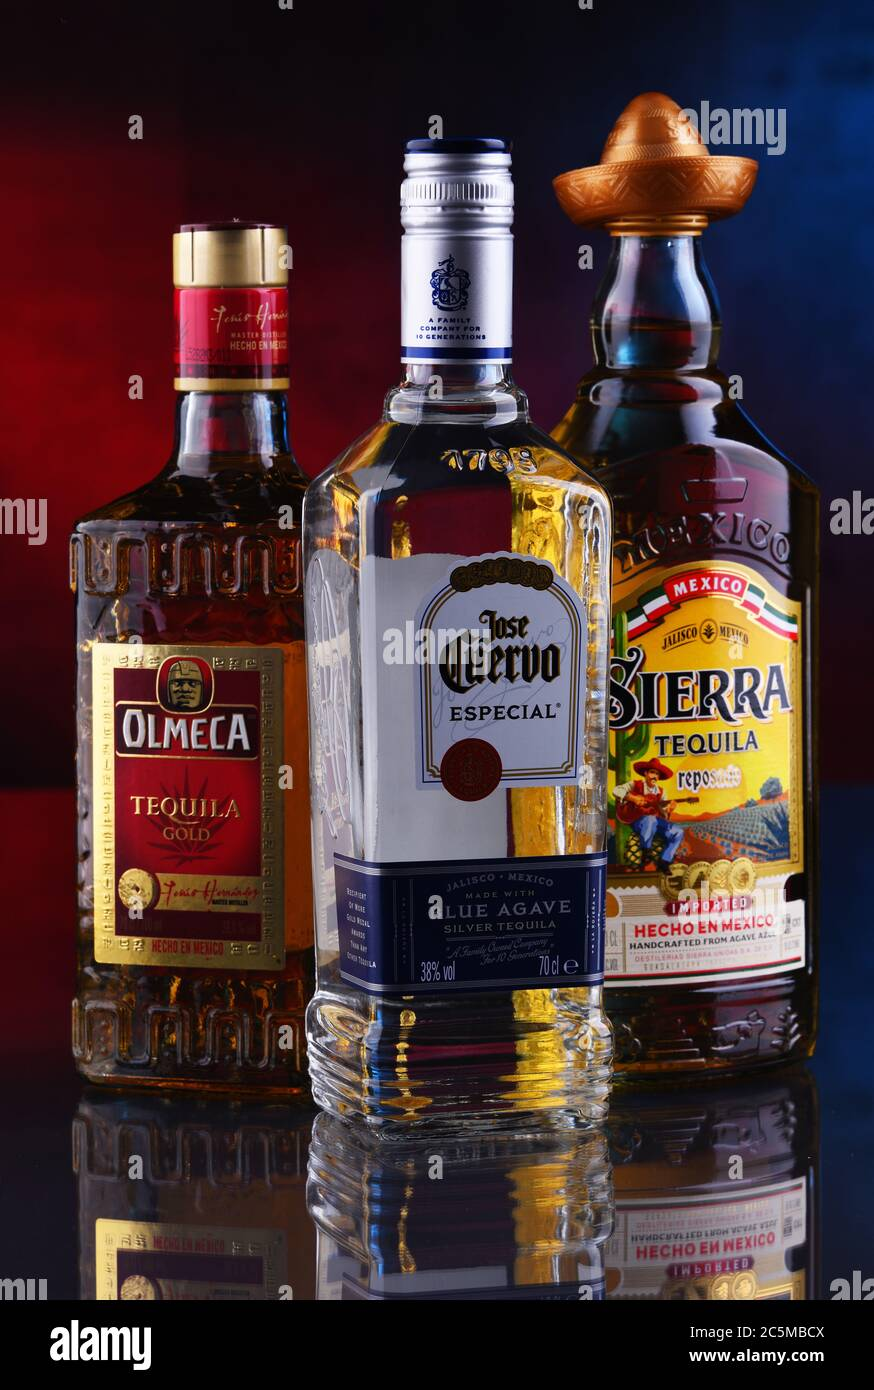 Page 2 Tequila Bottles High Resolution Stock Photography And Images Alamy